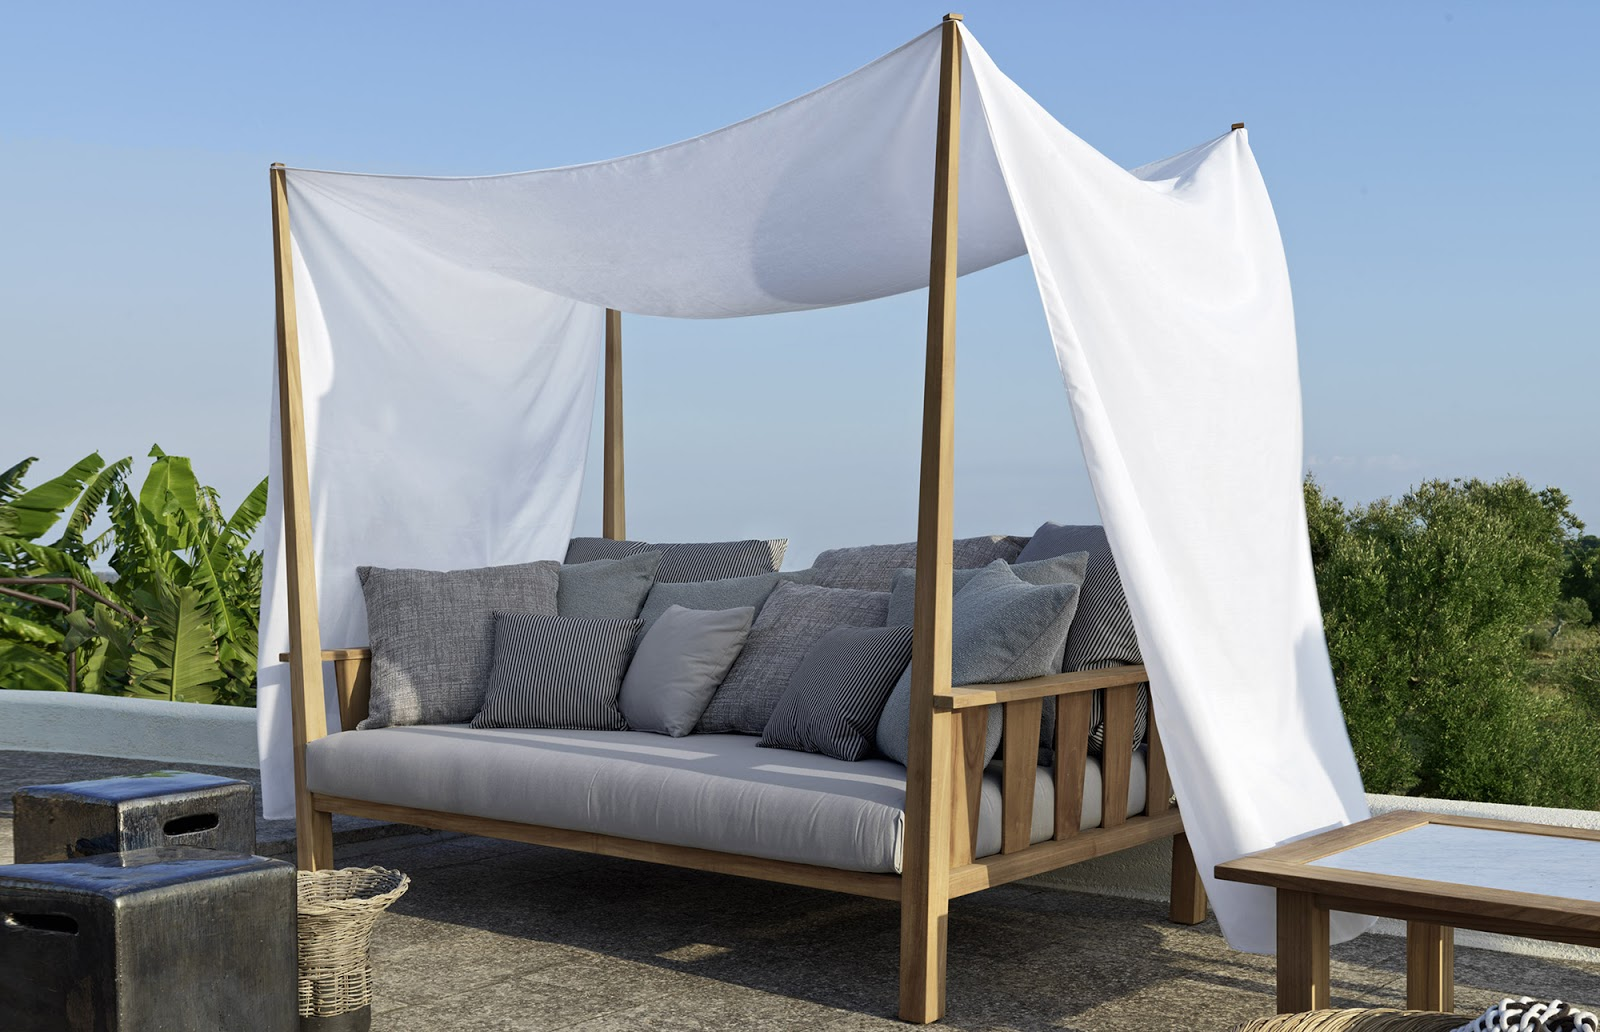 Garden furniture with a canopy